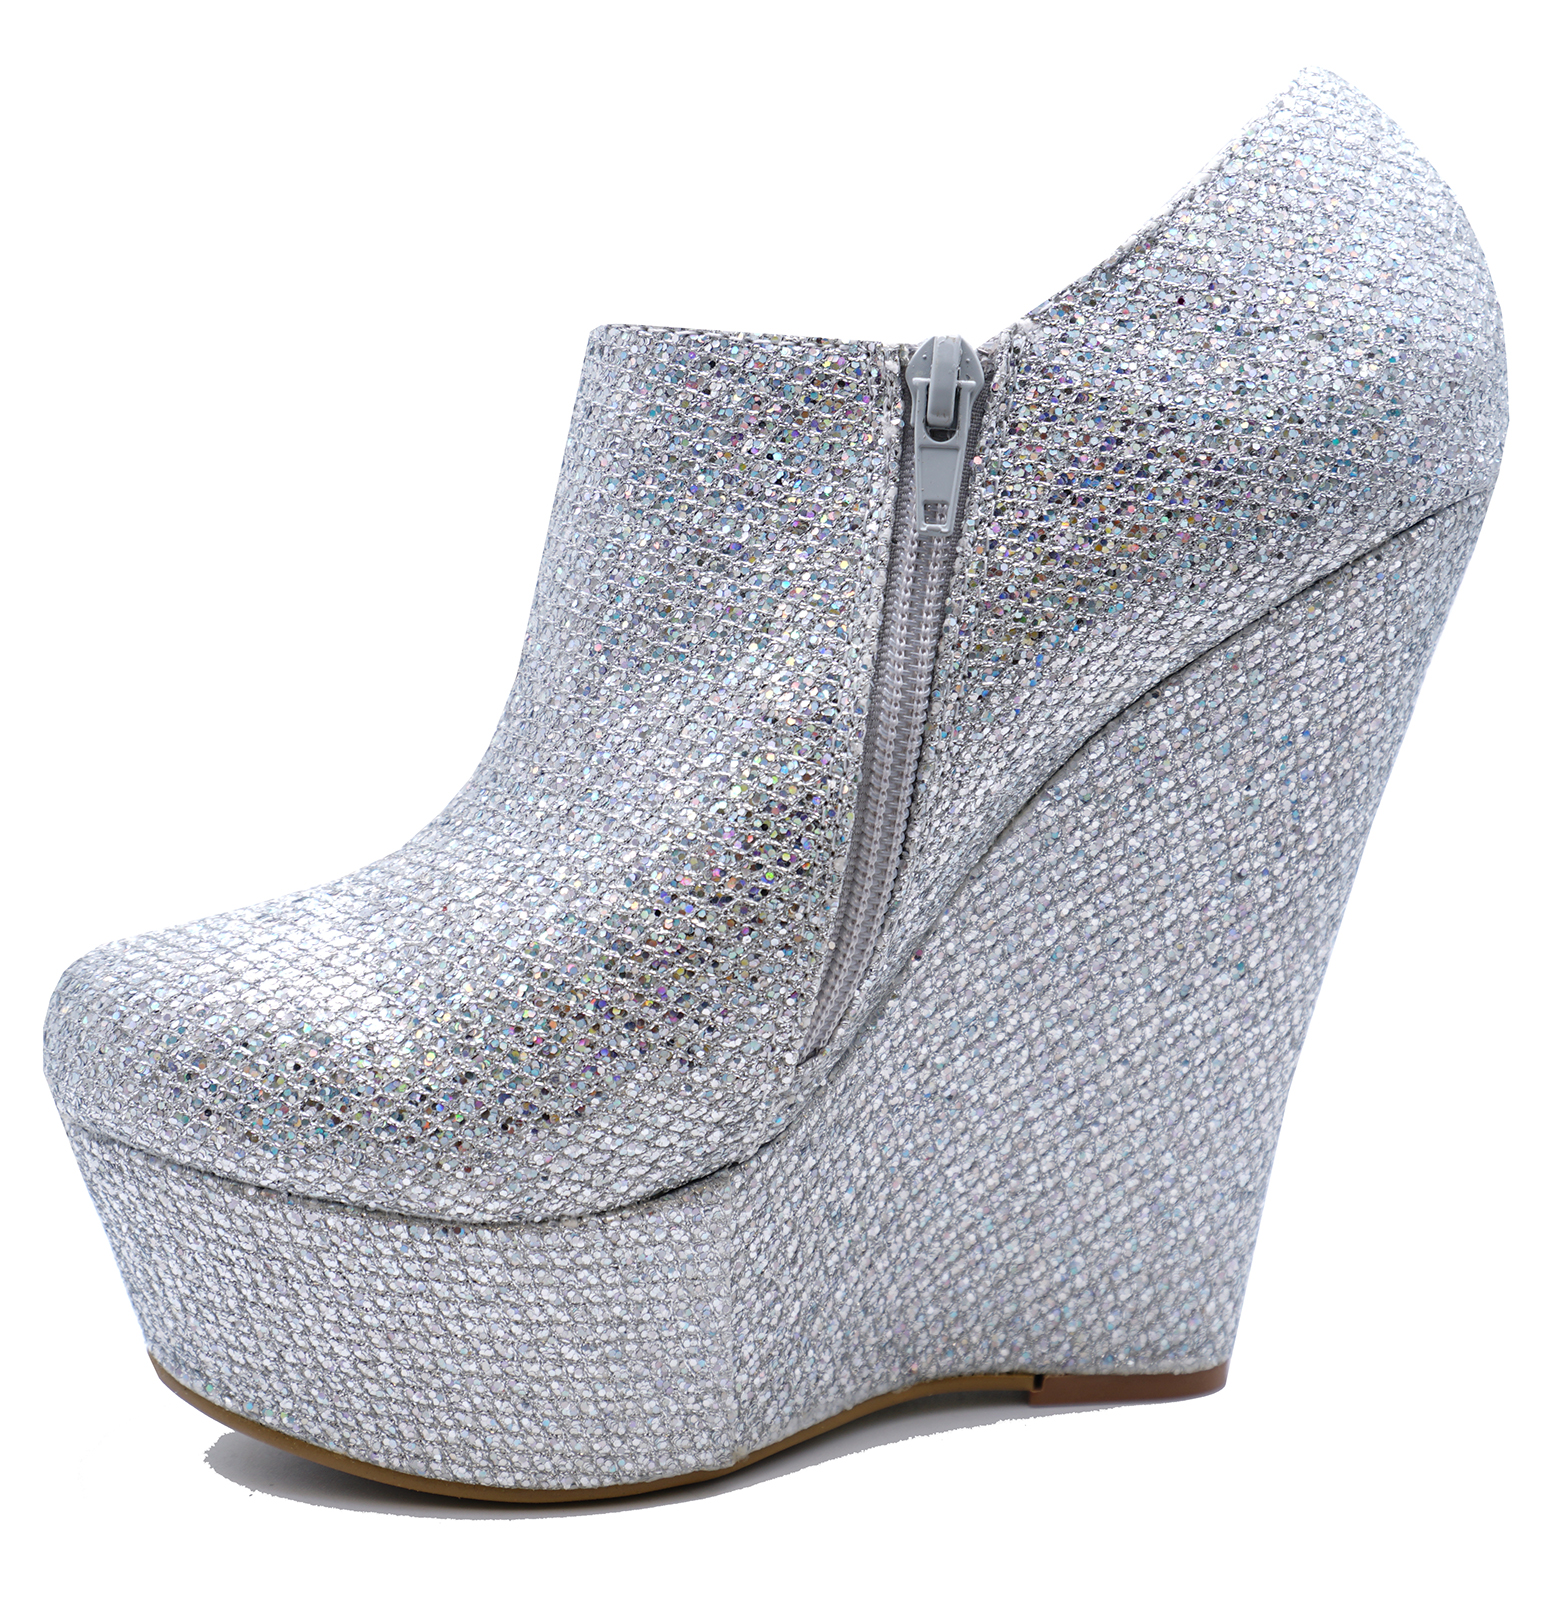 901049a38fb Sentinel WOMENS SILVER GLITTER ZIP-UP WEDGE PLATFORM ANKLE CHELSEA BOOTS  SHOES SIZES 3-8